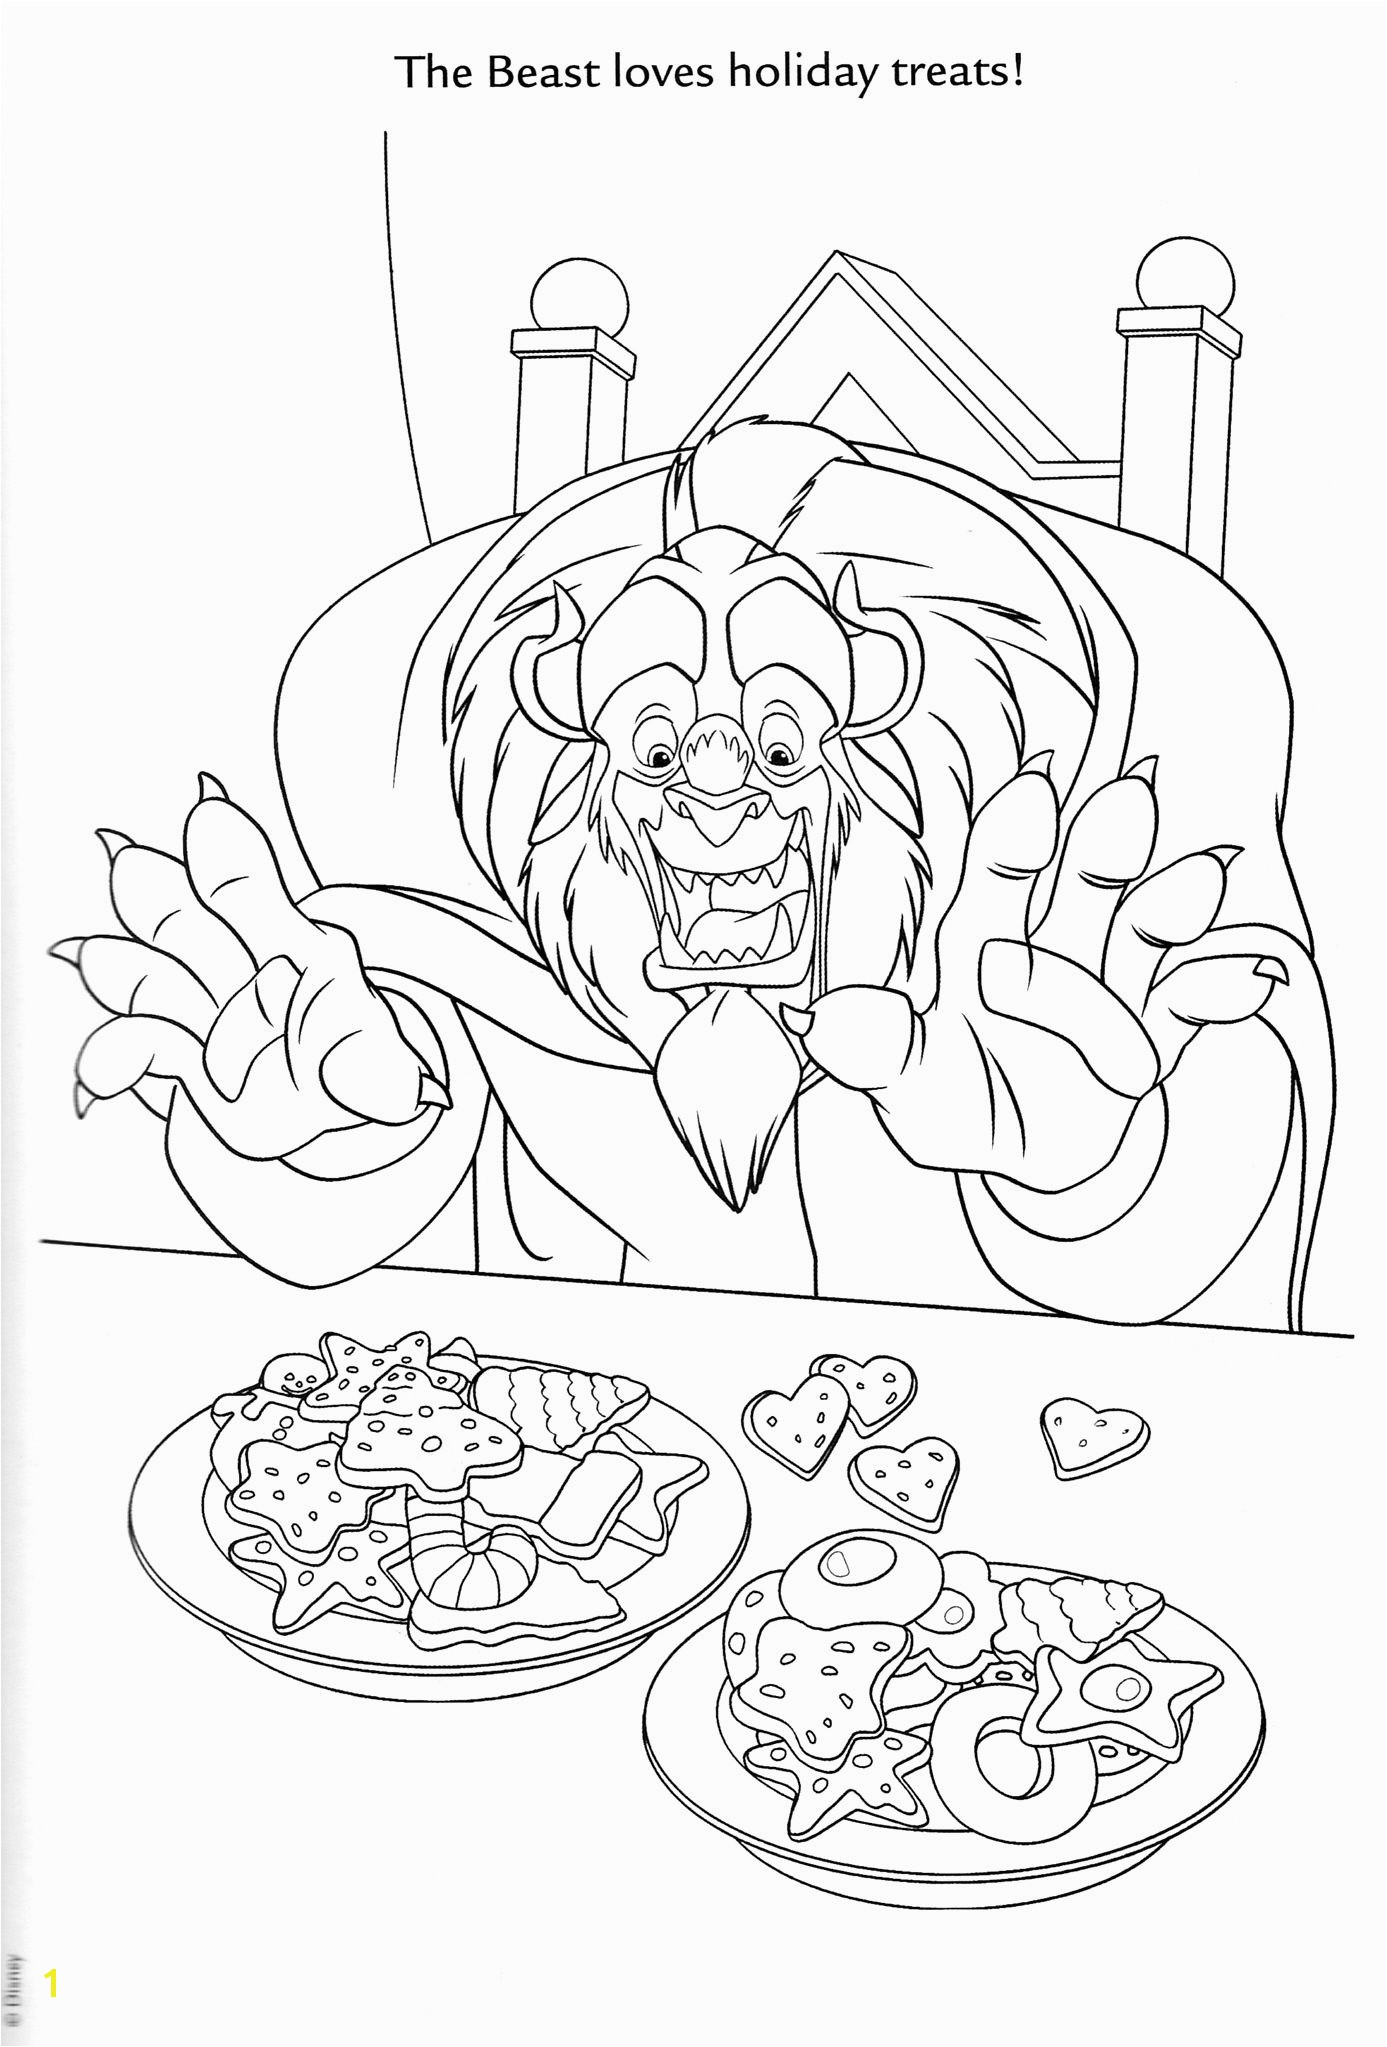 Colouring Pages Coloring Books Princess Disney Belle The Beast Vintage Coloring Books Coloring Pages Disney Princess Printable Coloring Pages